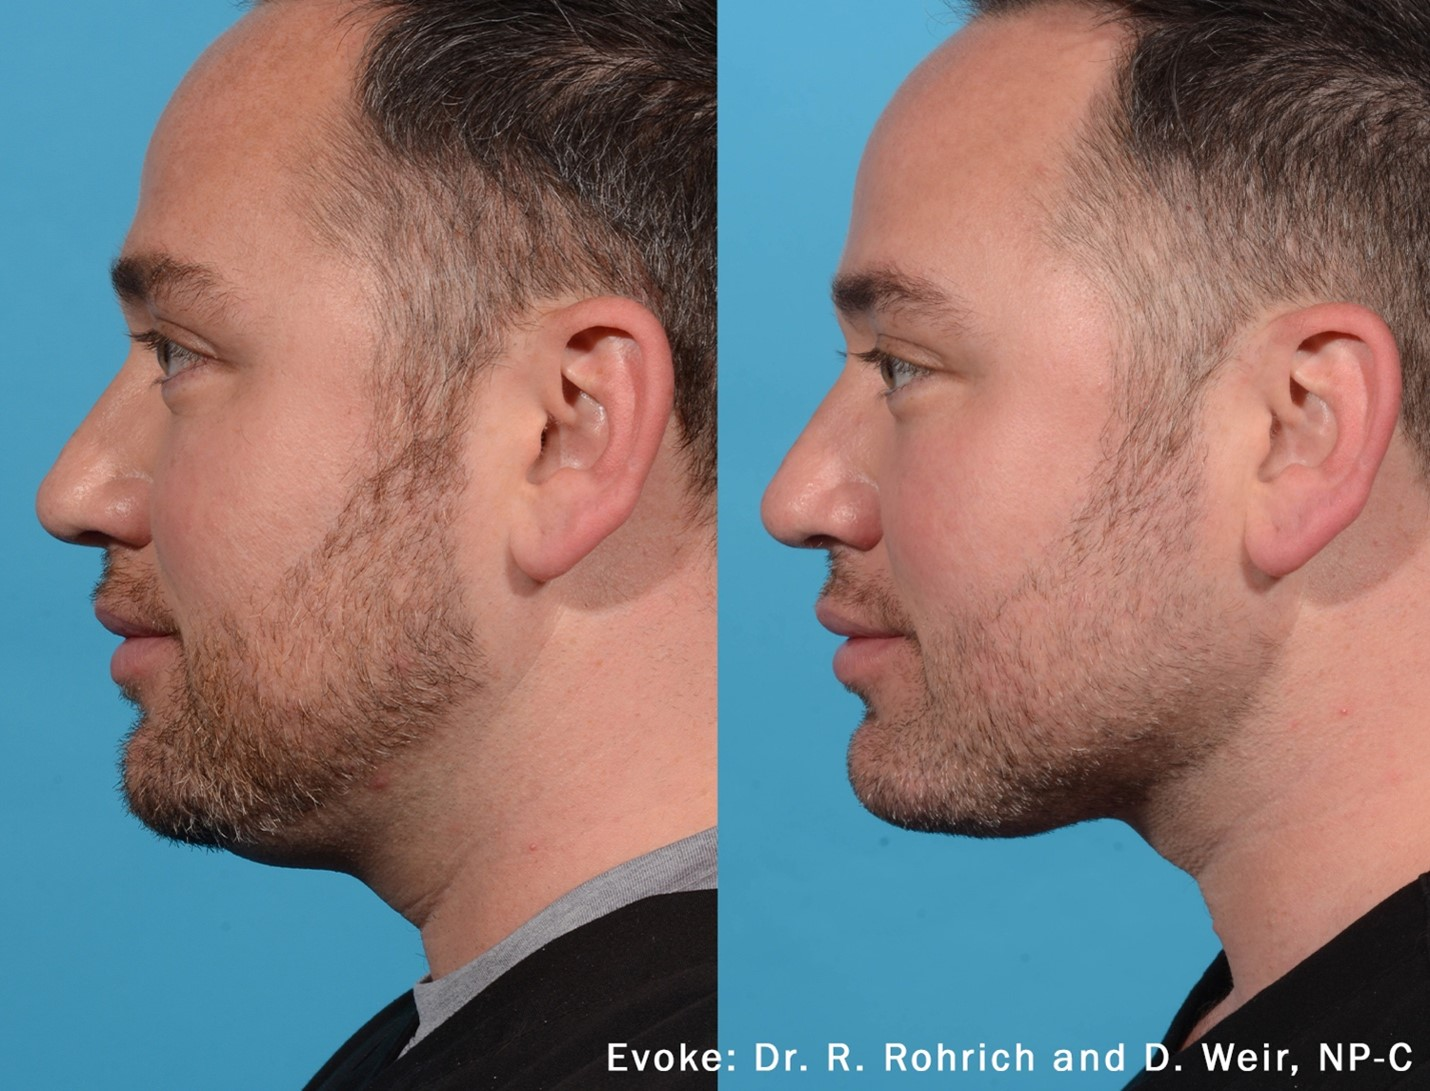 Evoke - Face Tightening Procedures